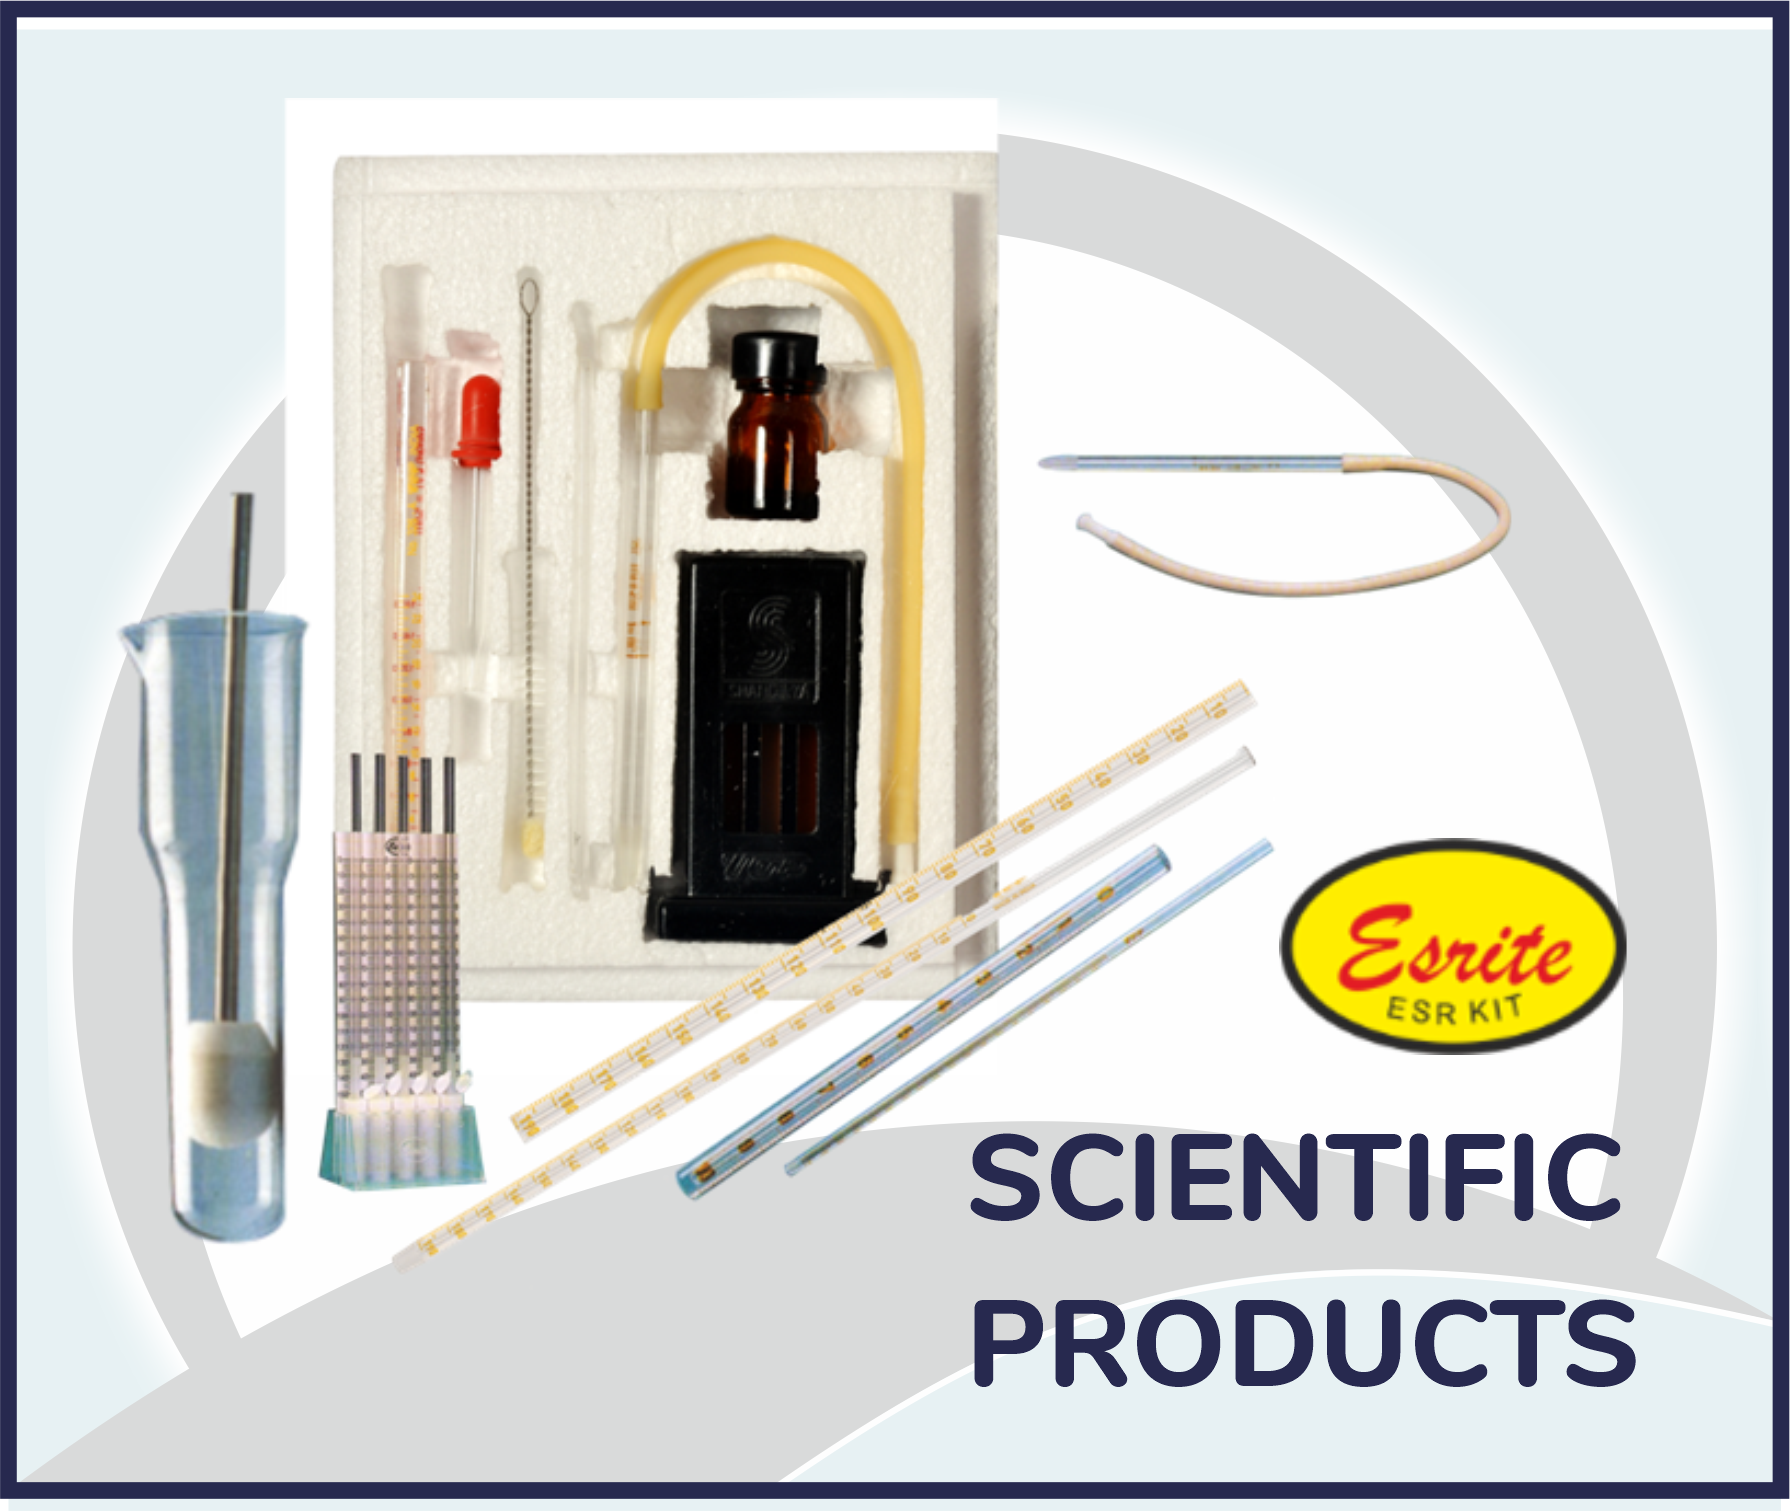 Scientific Products